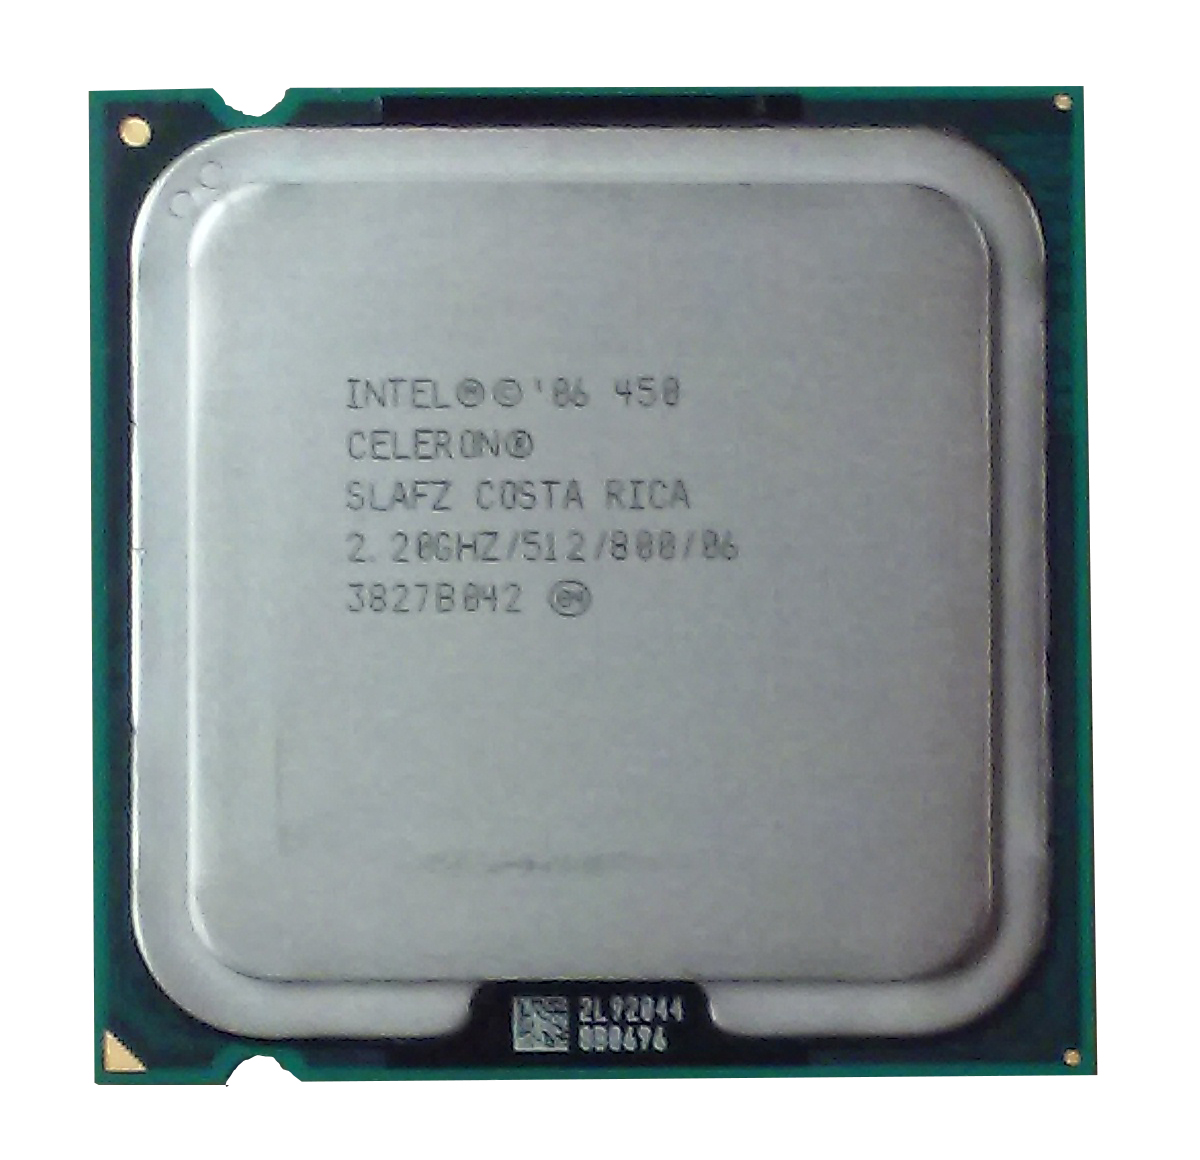 Refurbished Intel Celeron 450 2.2GHz 800MHz LGA 775/Socket T  SLAFZ